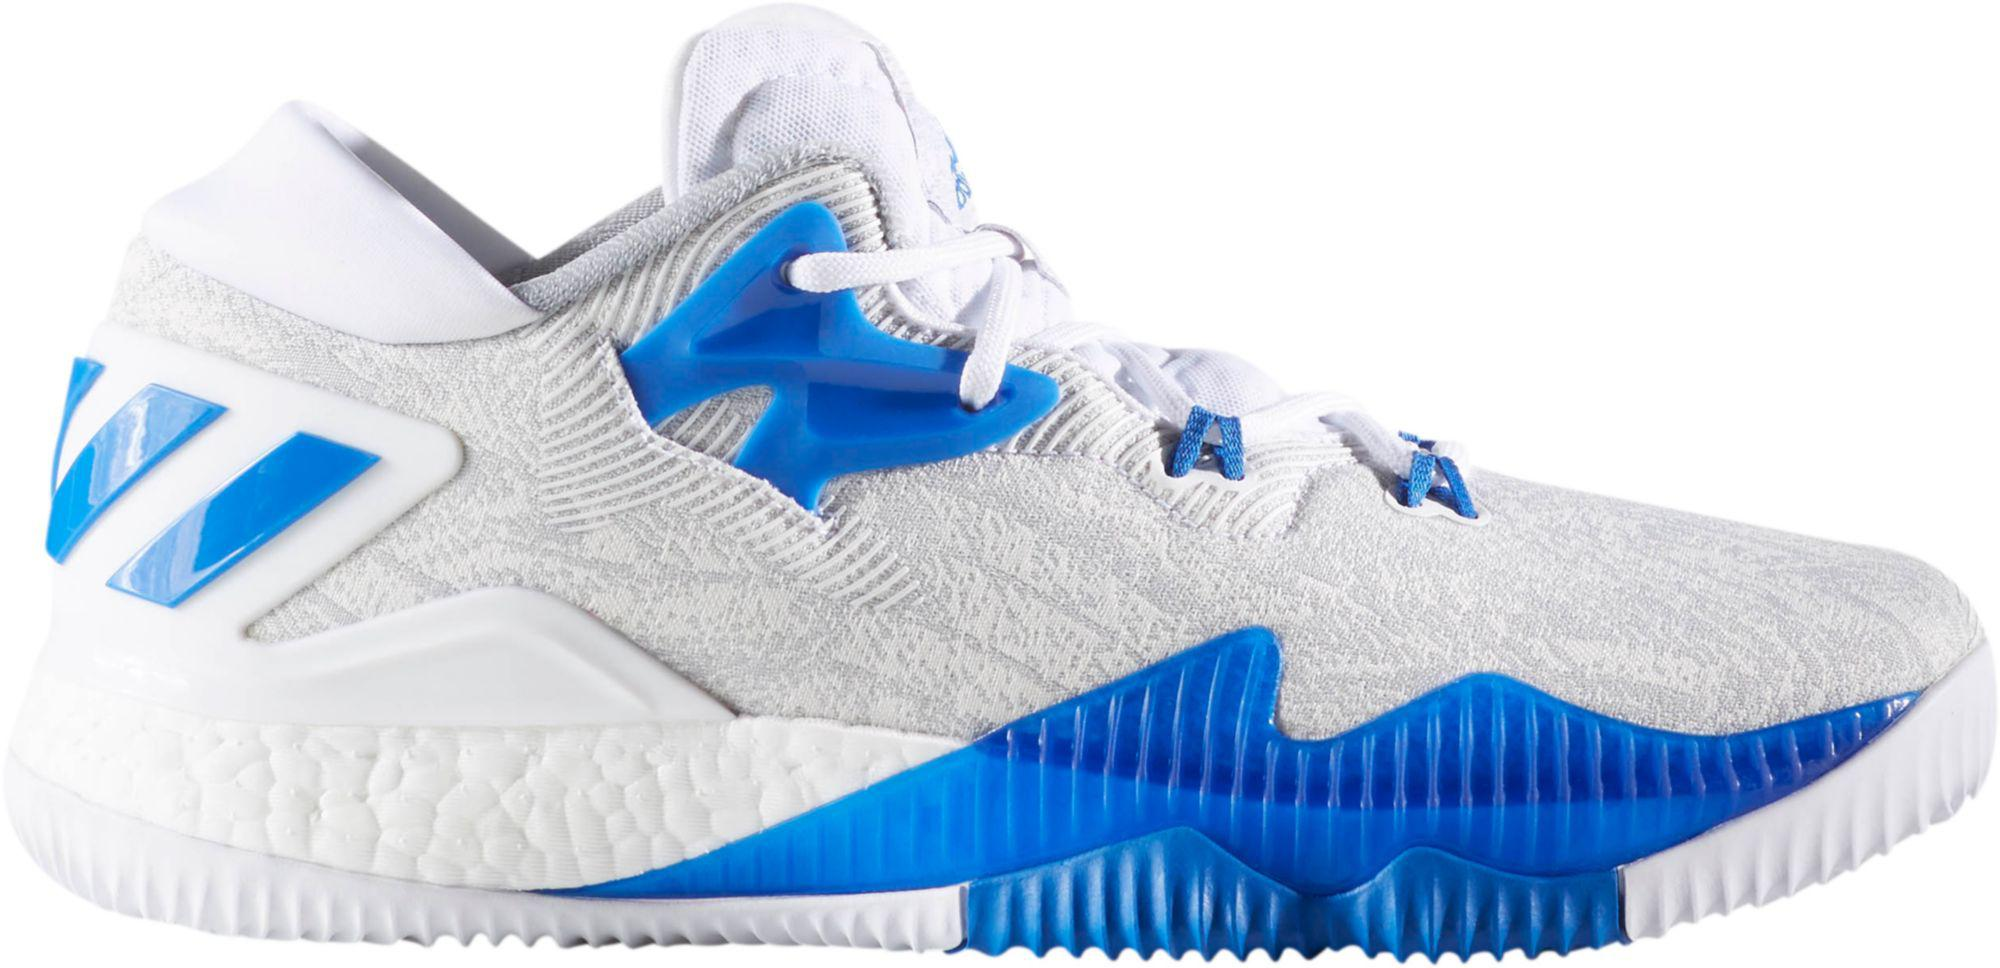 0cf8852b adidas Crazylight Boost Low 2016 Basketball Shoes in Blue for Men - Lyst